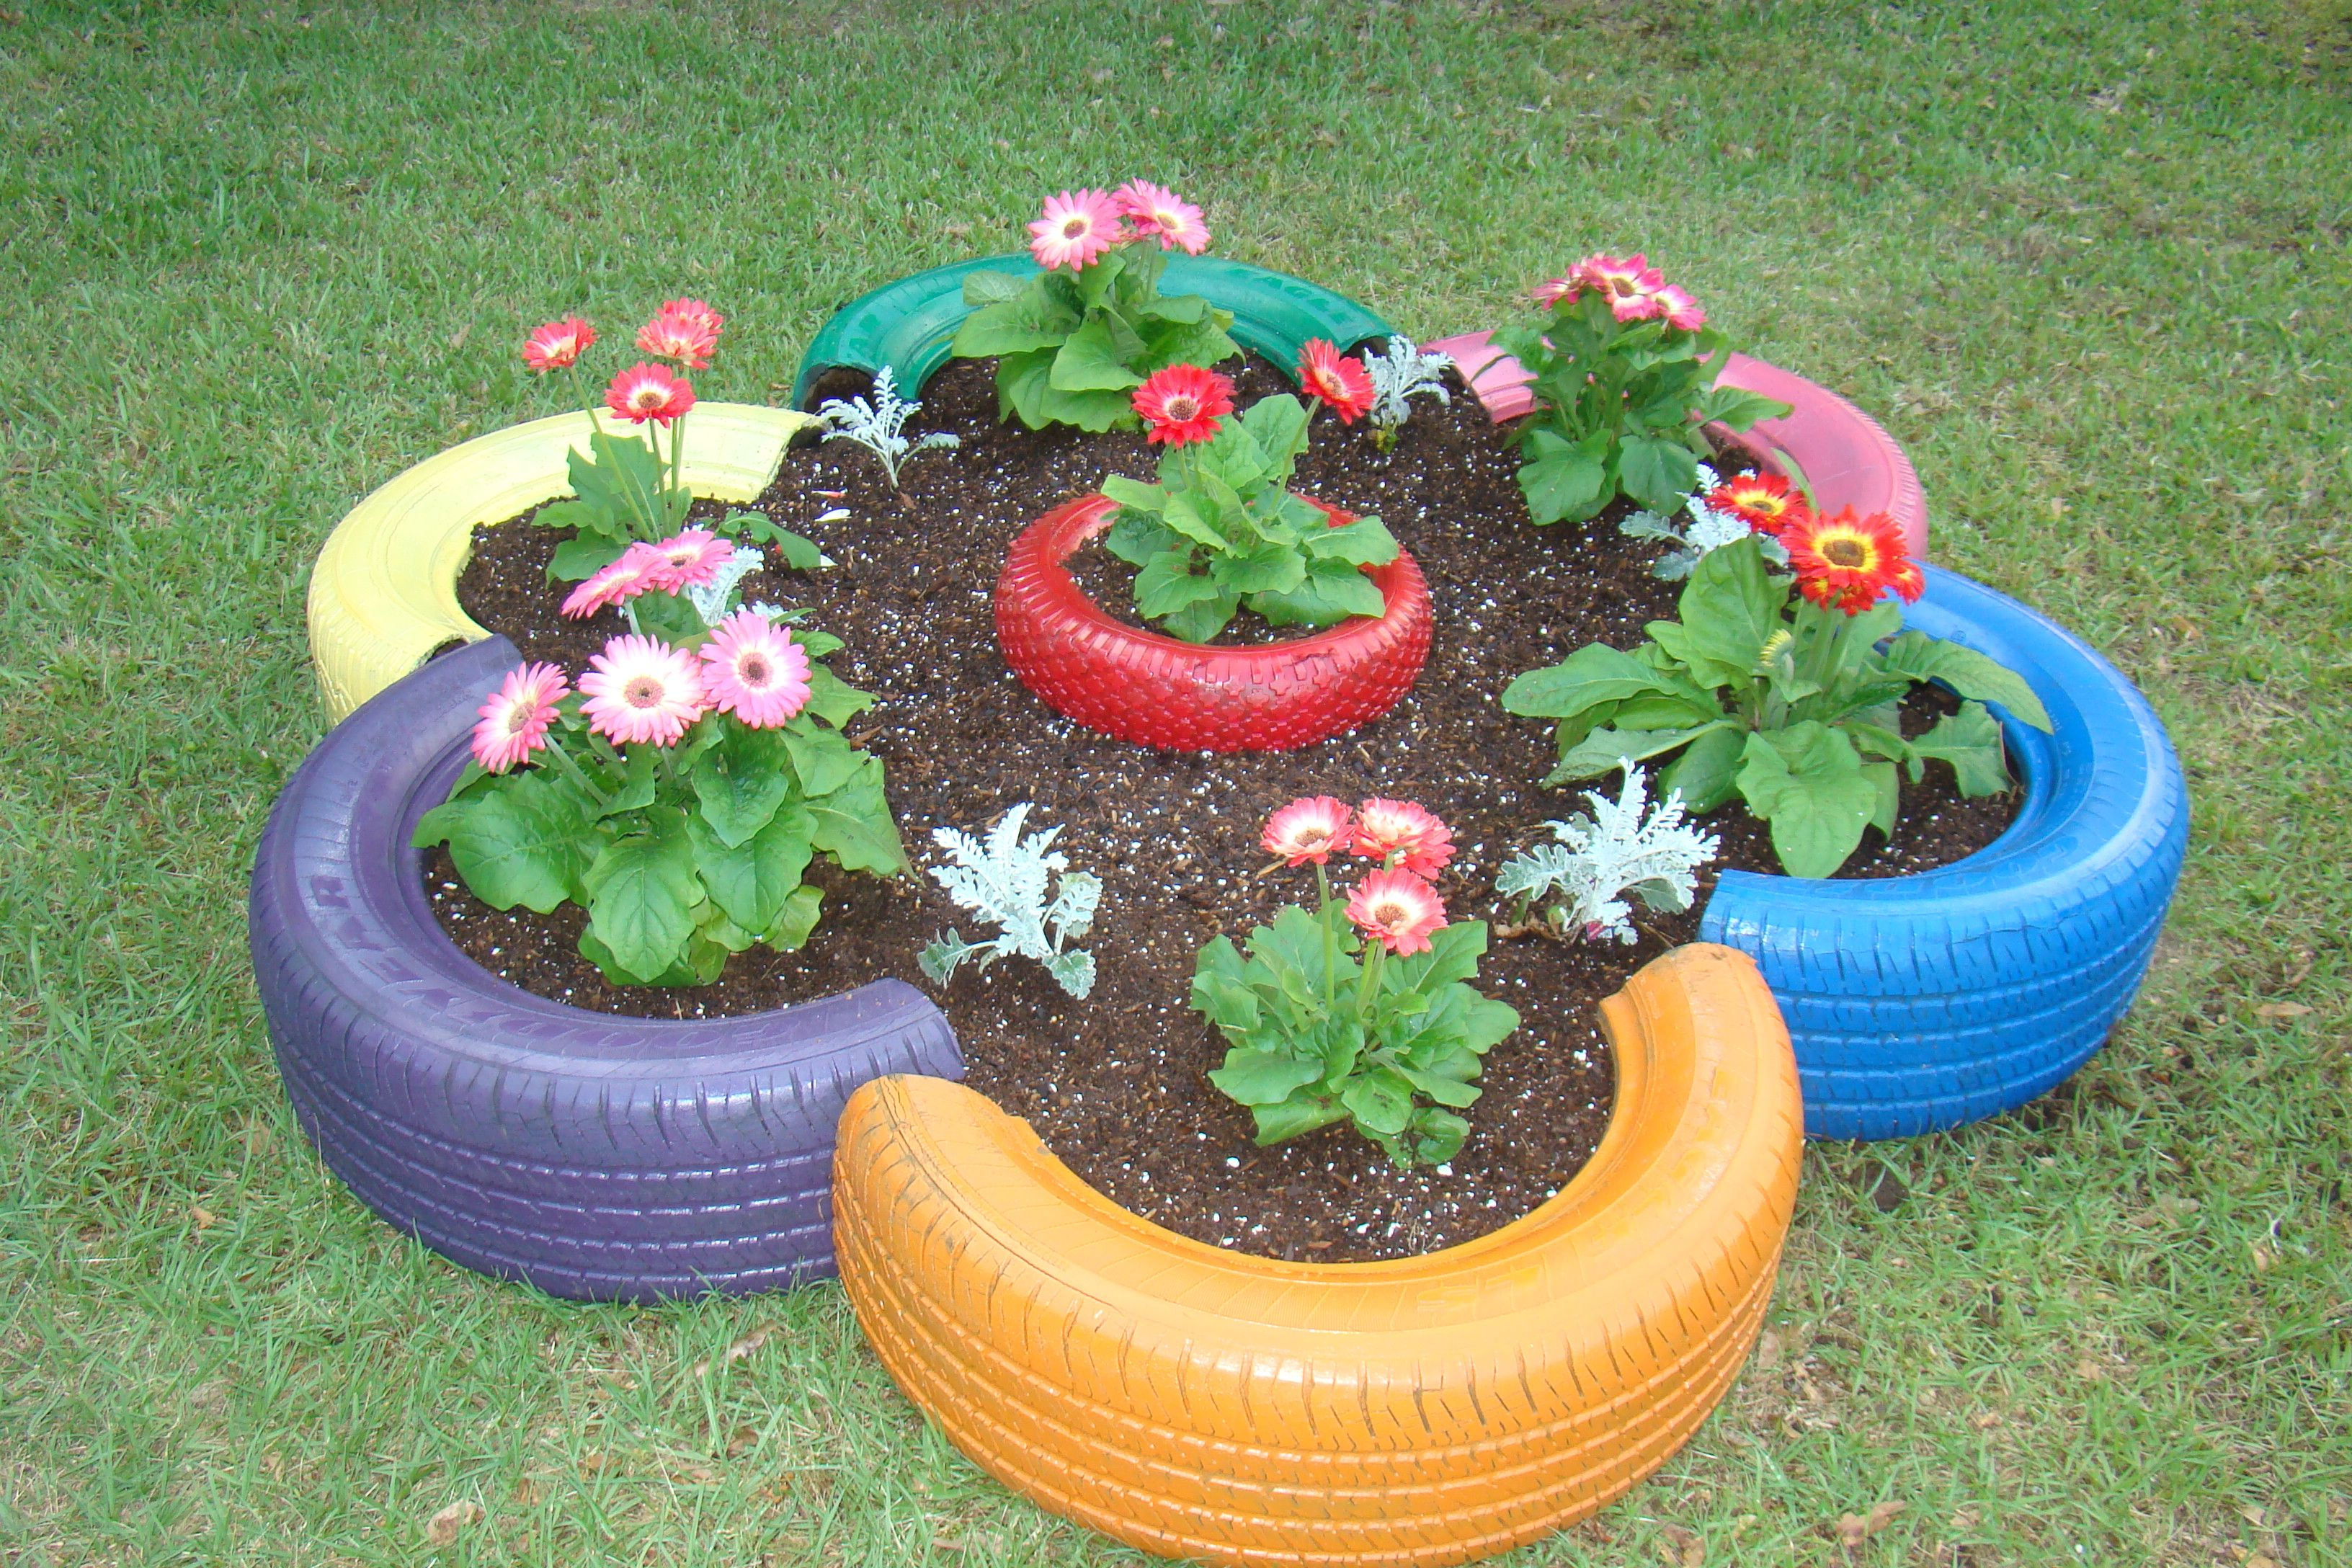 Flower Bed Made From Old Tires And Small Tire In The Center Diy Garden Decor Garden Decor Tire Garden